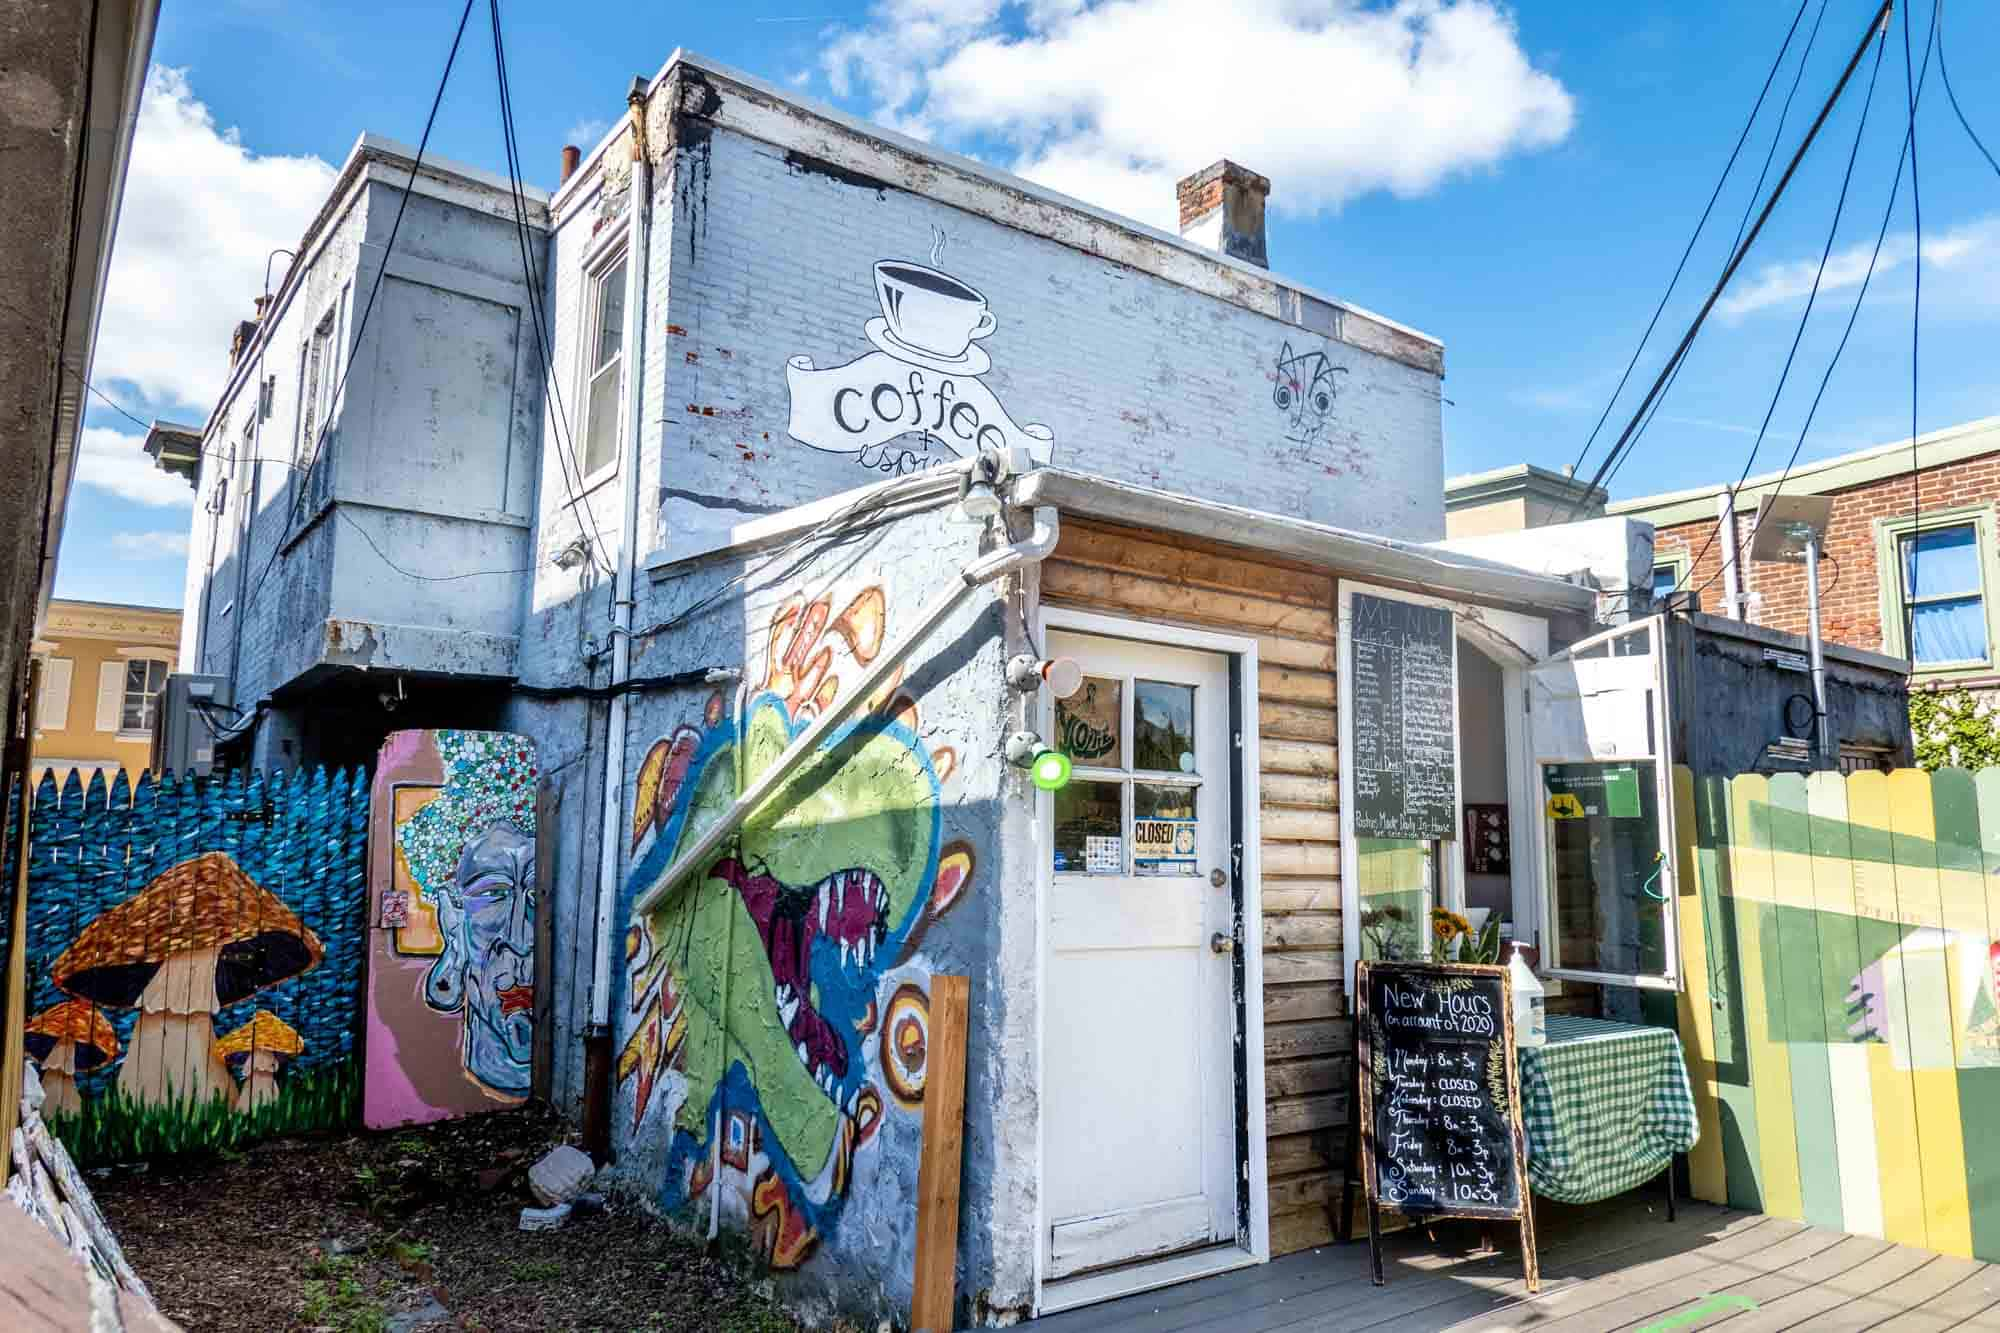 Exterior of a small cafe with colorful murals on the outside